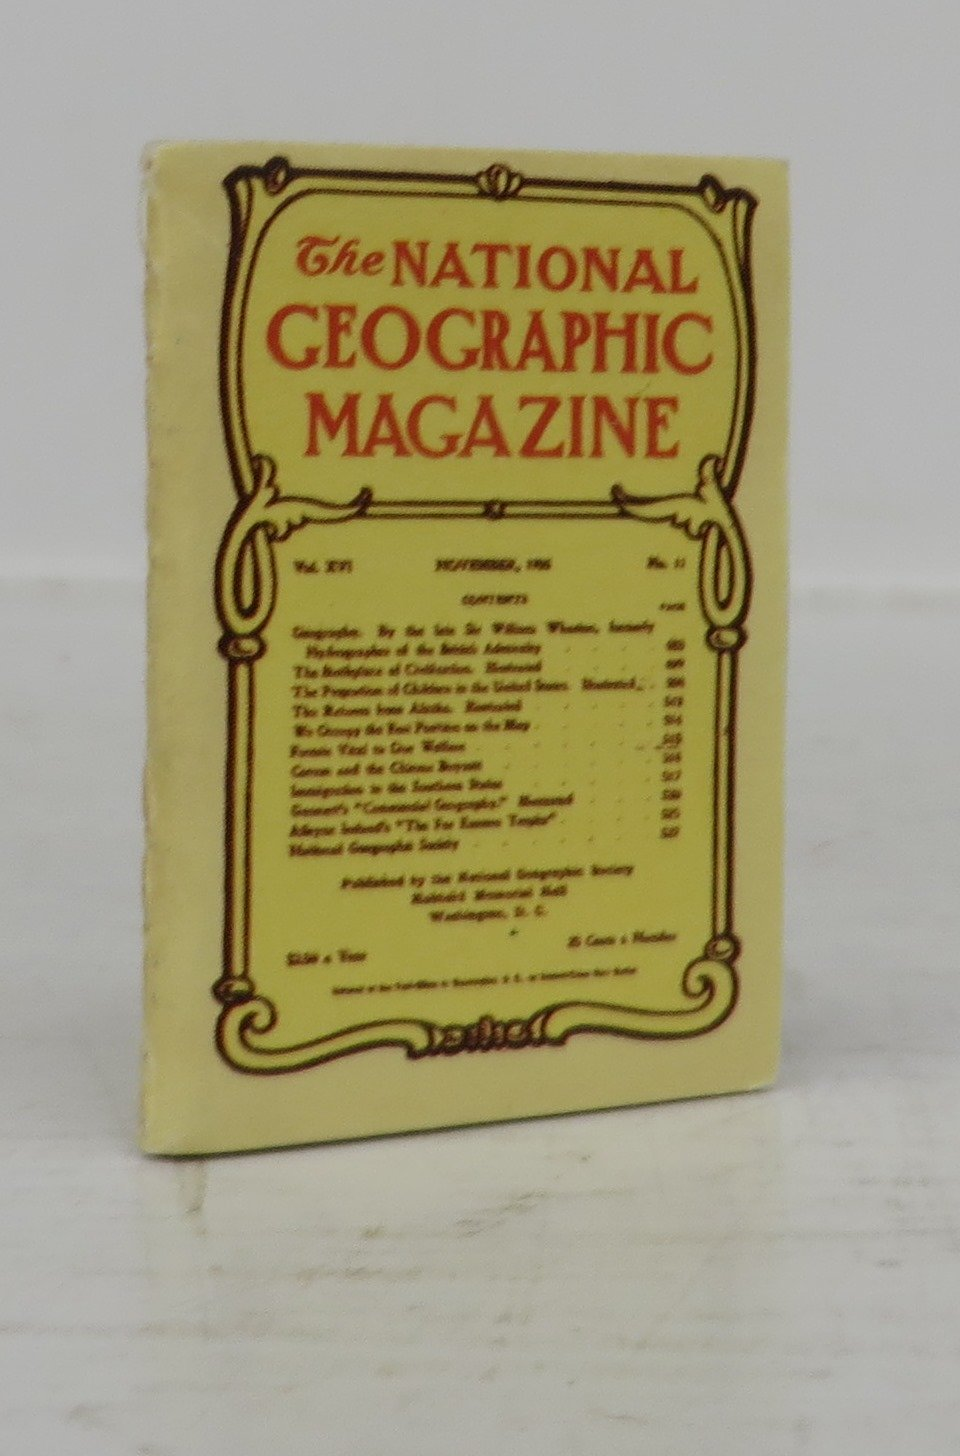 The National Geographic Magazine (Miniature book)